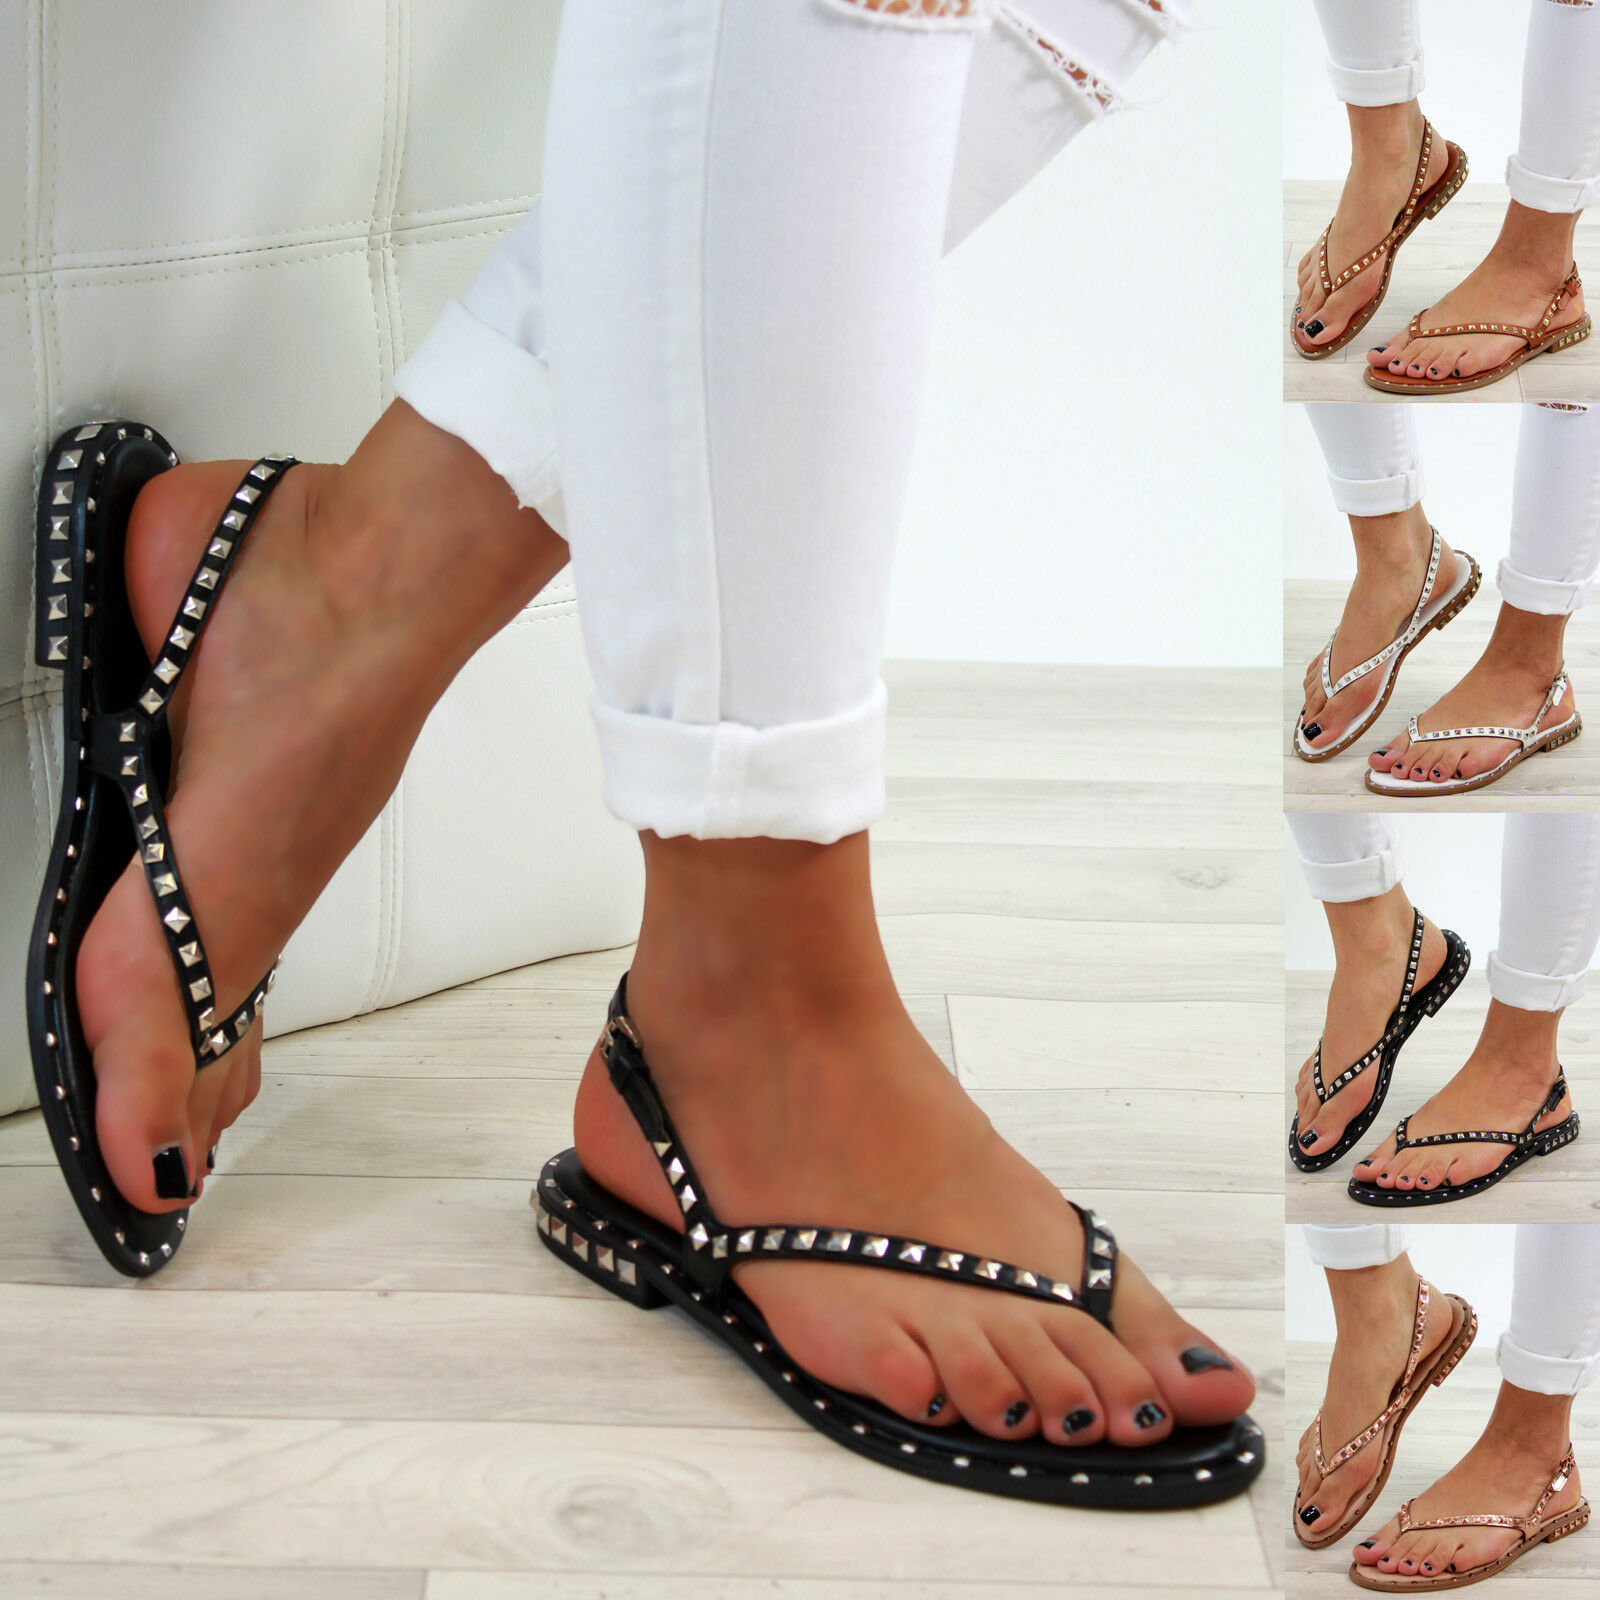 New Womens Low Heel Buckle Sandals Studs Toe Post Buckle Heel Comfy Holiday Shoes Sizes 3-8 0af754